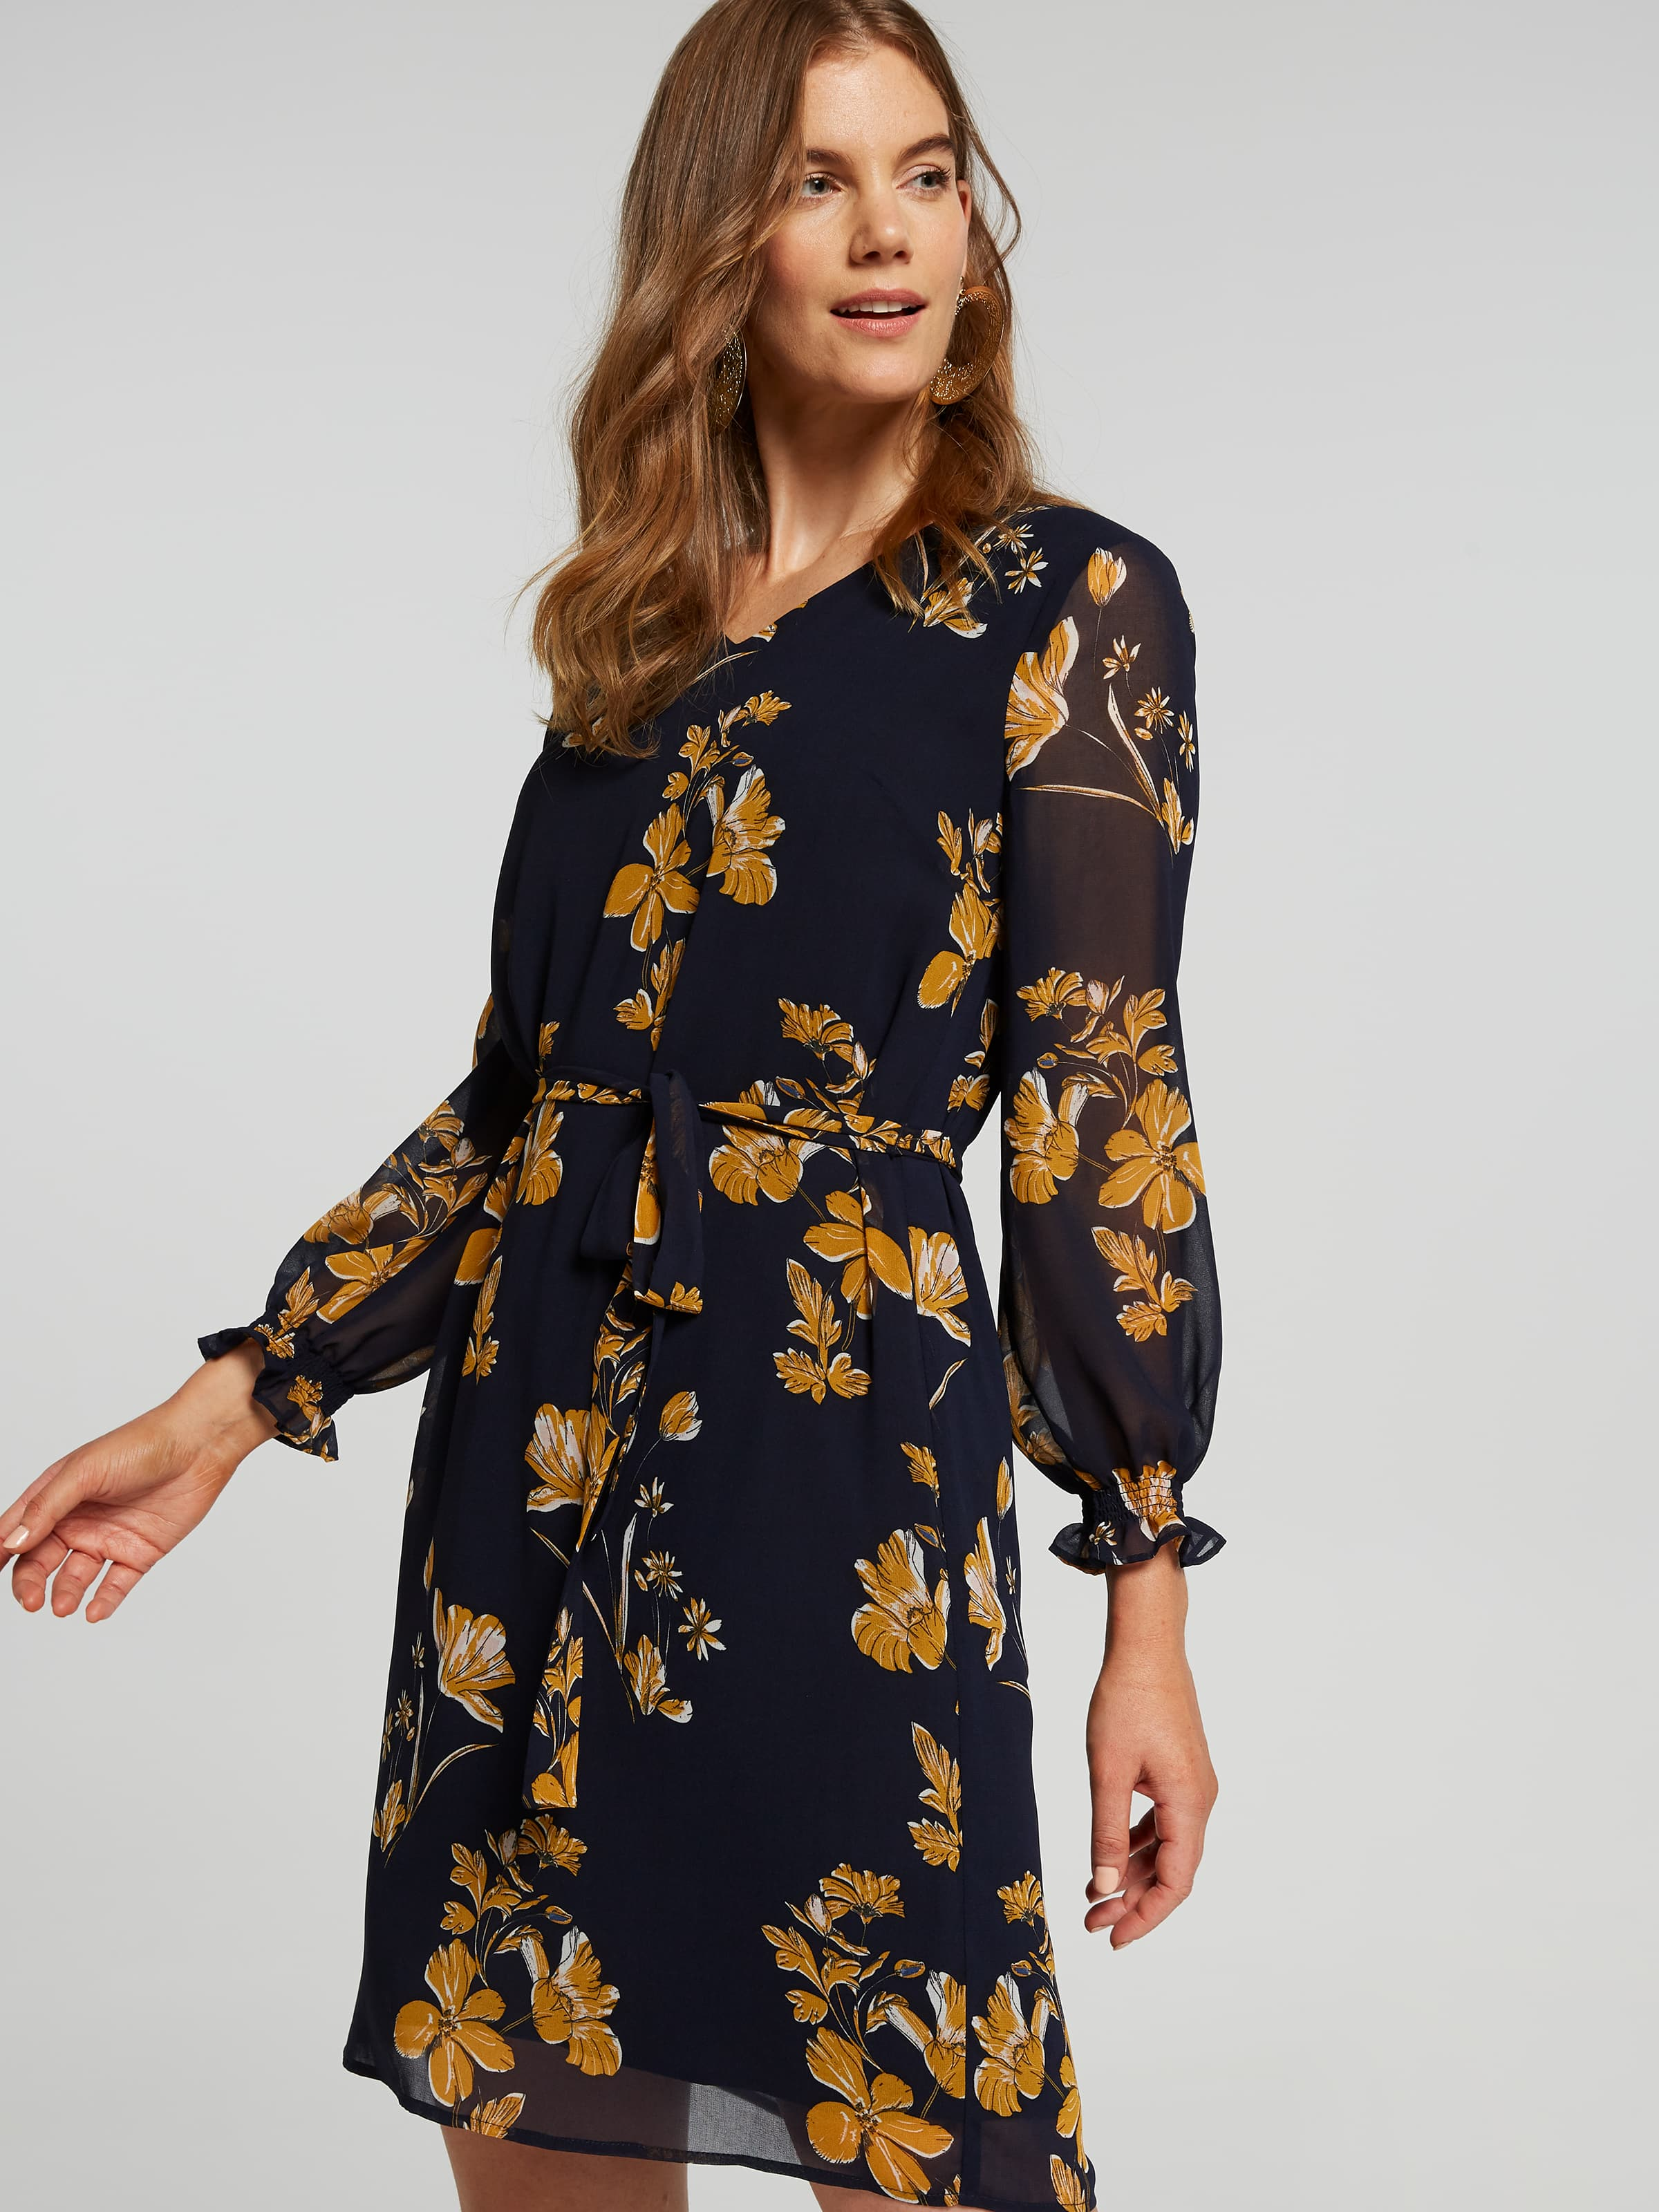 Image of Jacqui E Australia Jacqui E 3/4 Sleeve V-Neck Amy Dress